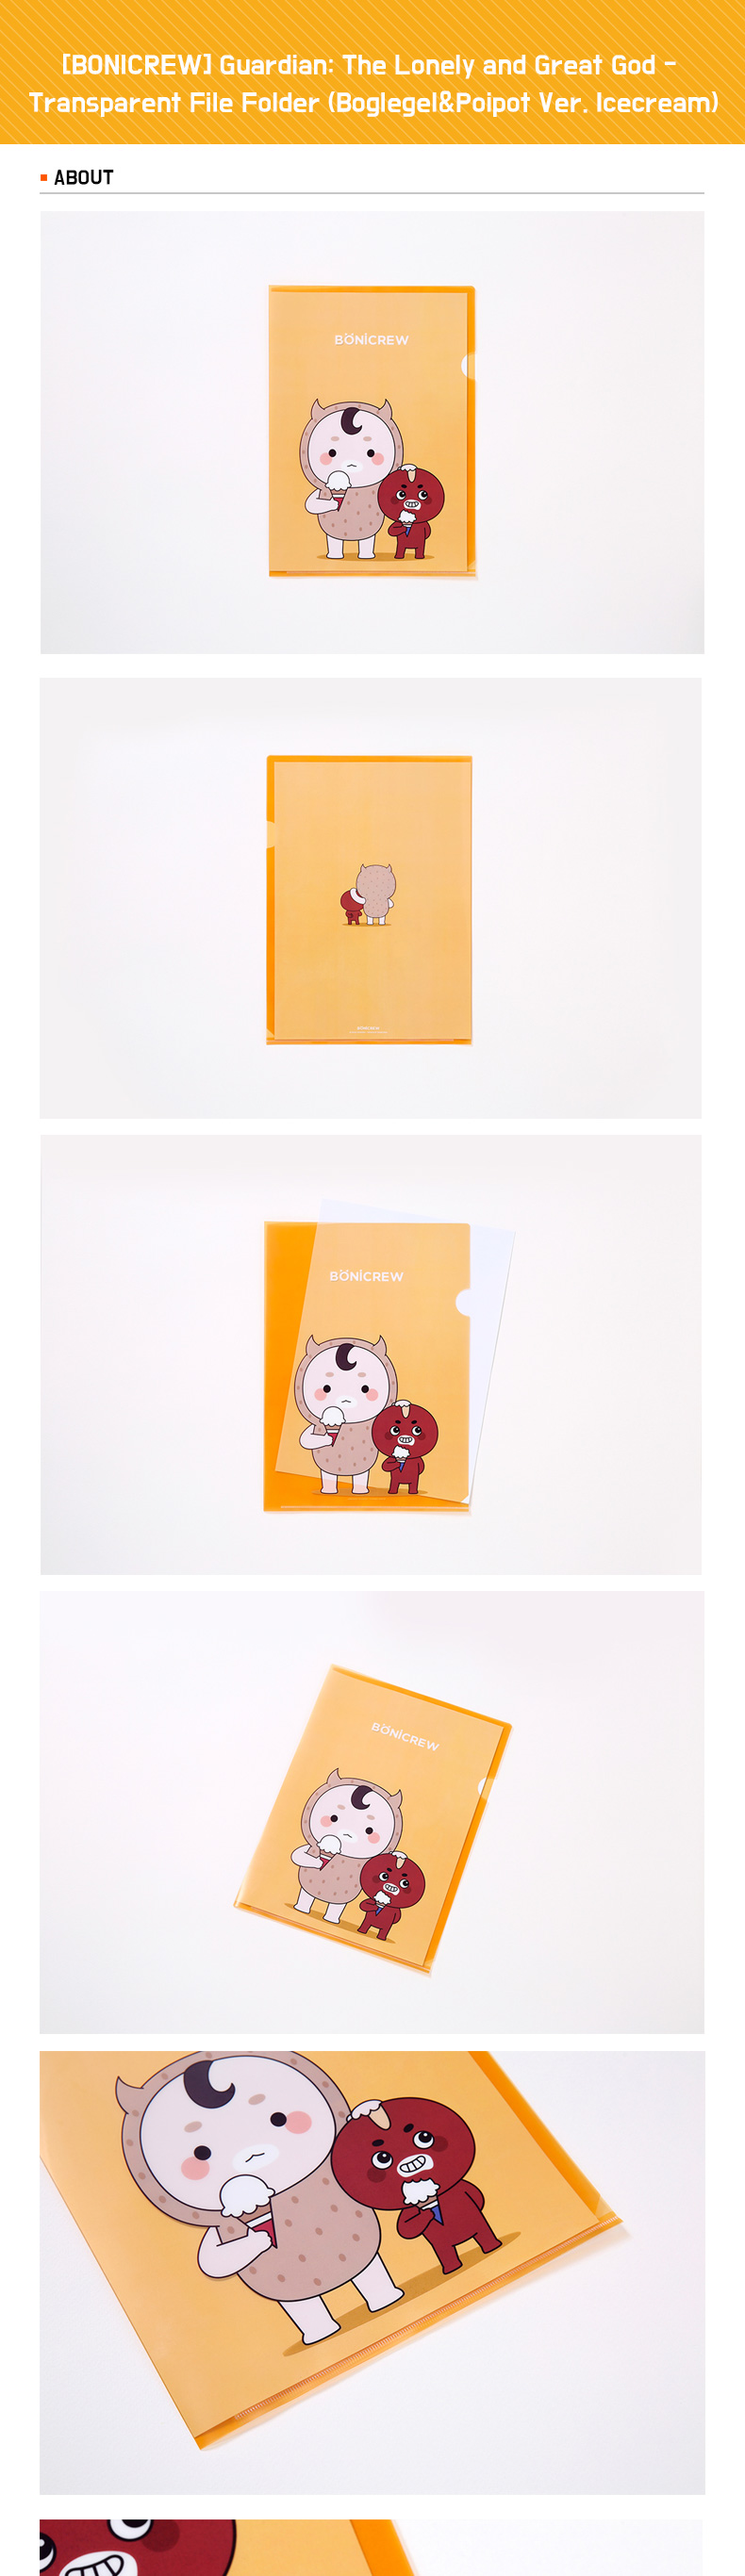 [BONICREW] Guardian: The Lonely and Great God - Transparent File Folder (Boglegel&Poipot Ver. Icecream)